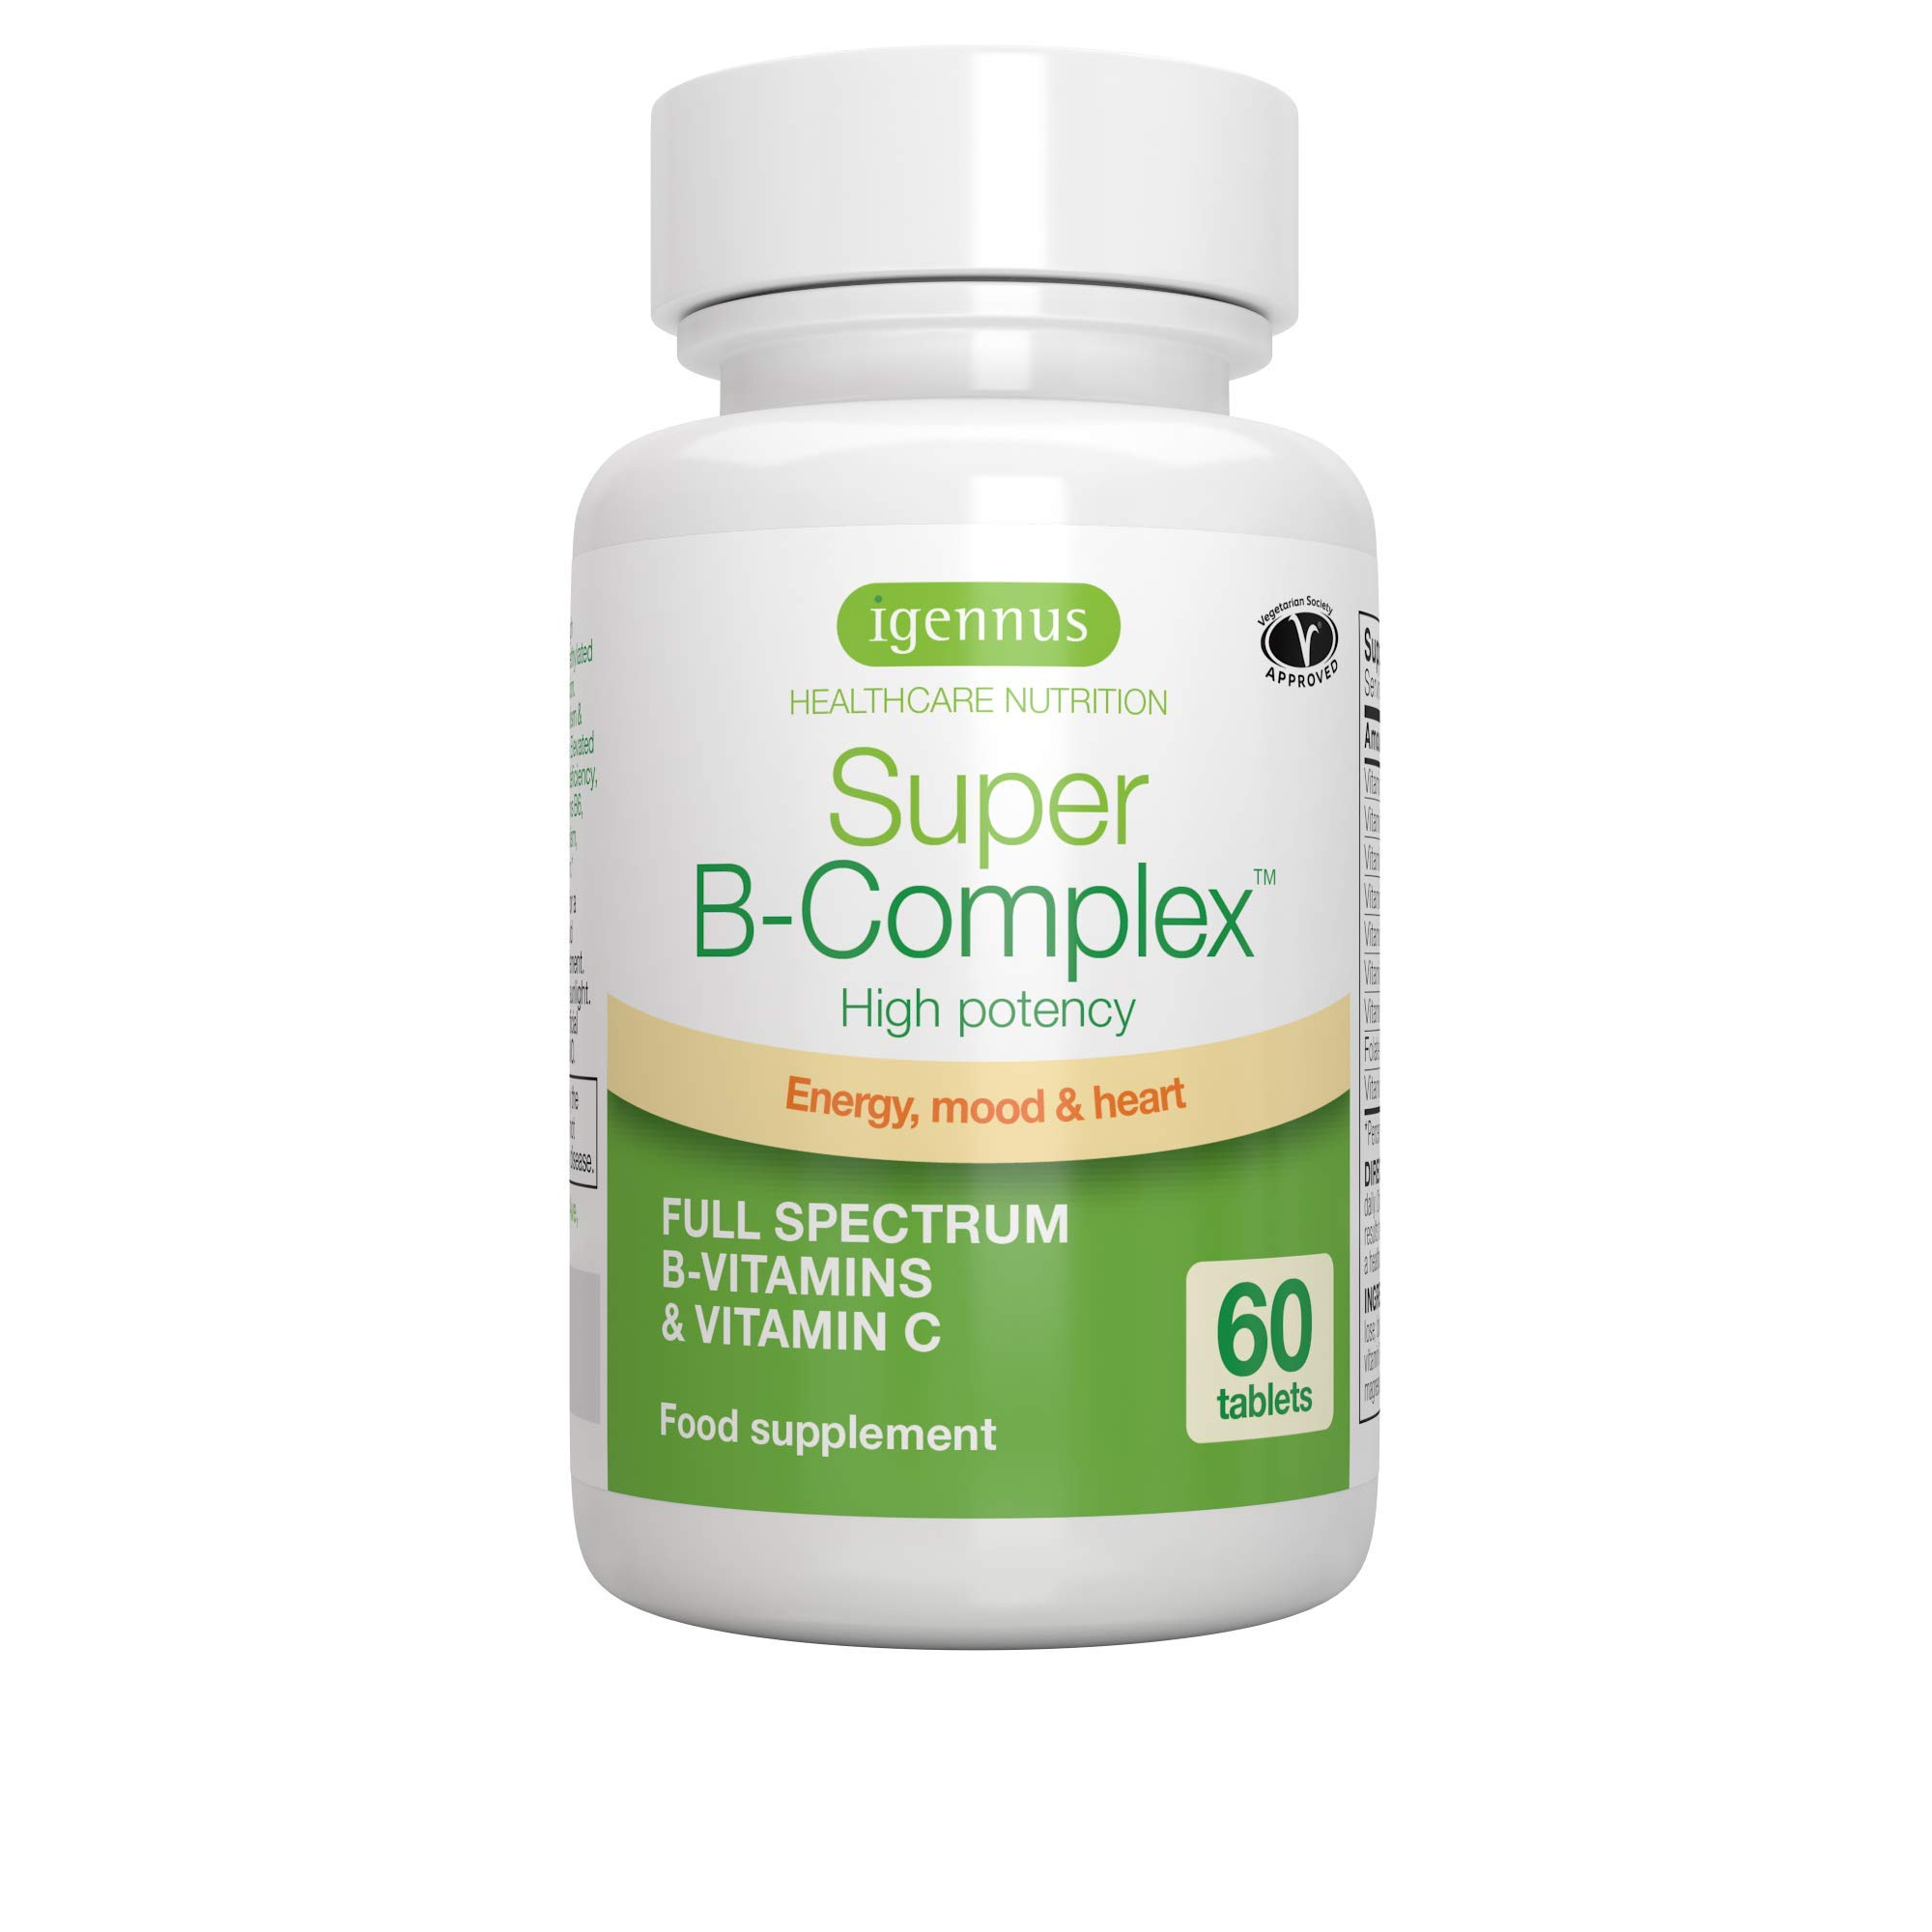 Super B-Complex - Methylated B Complex Vitamins, Folate & Methylcobalamin, Vegan, 60 small tablets by Igennus Healthcare Nutrition